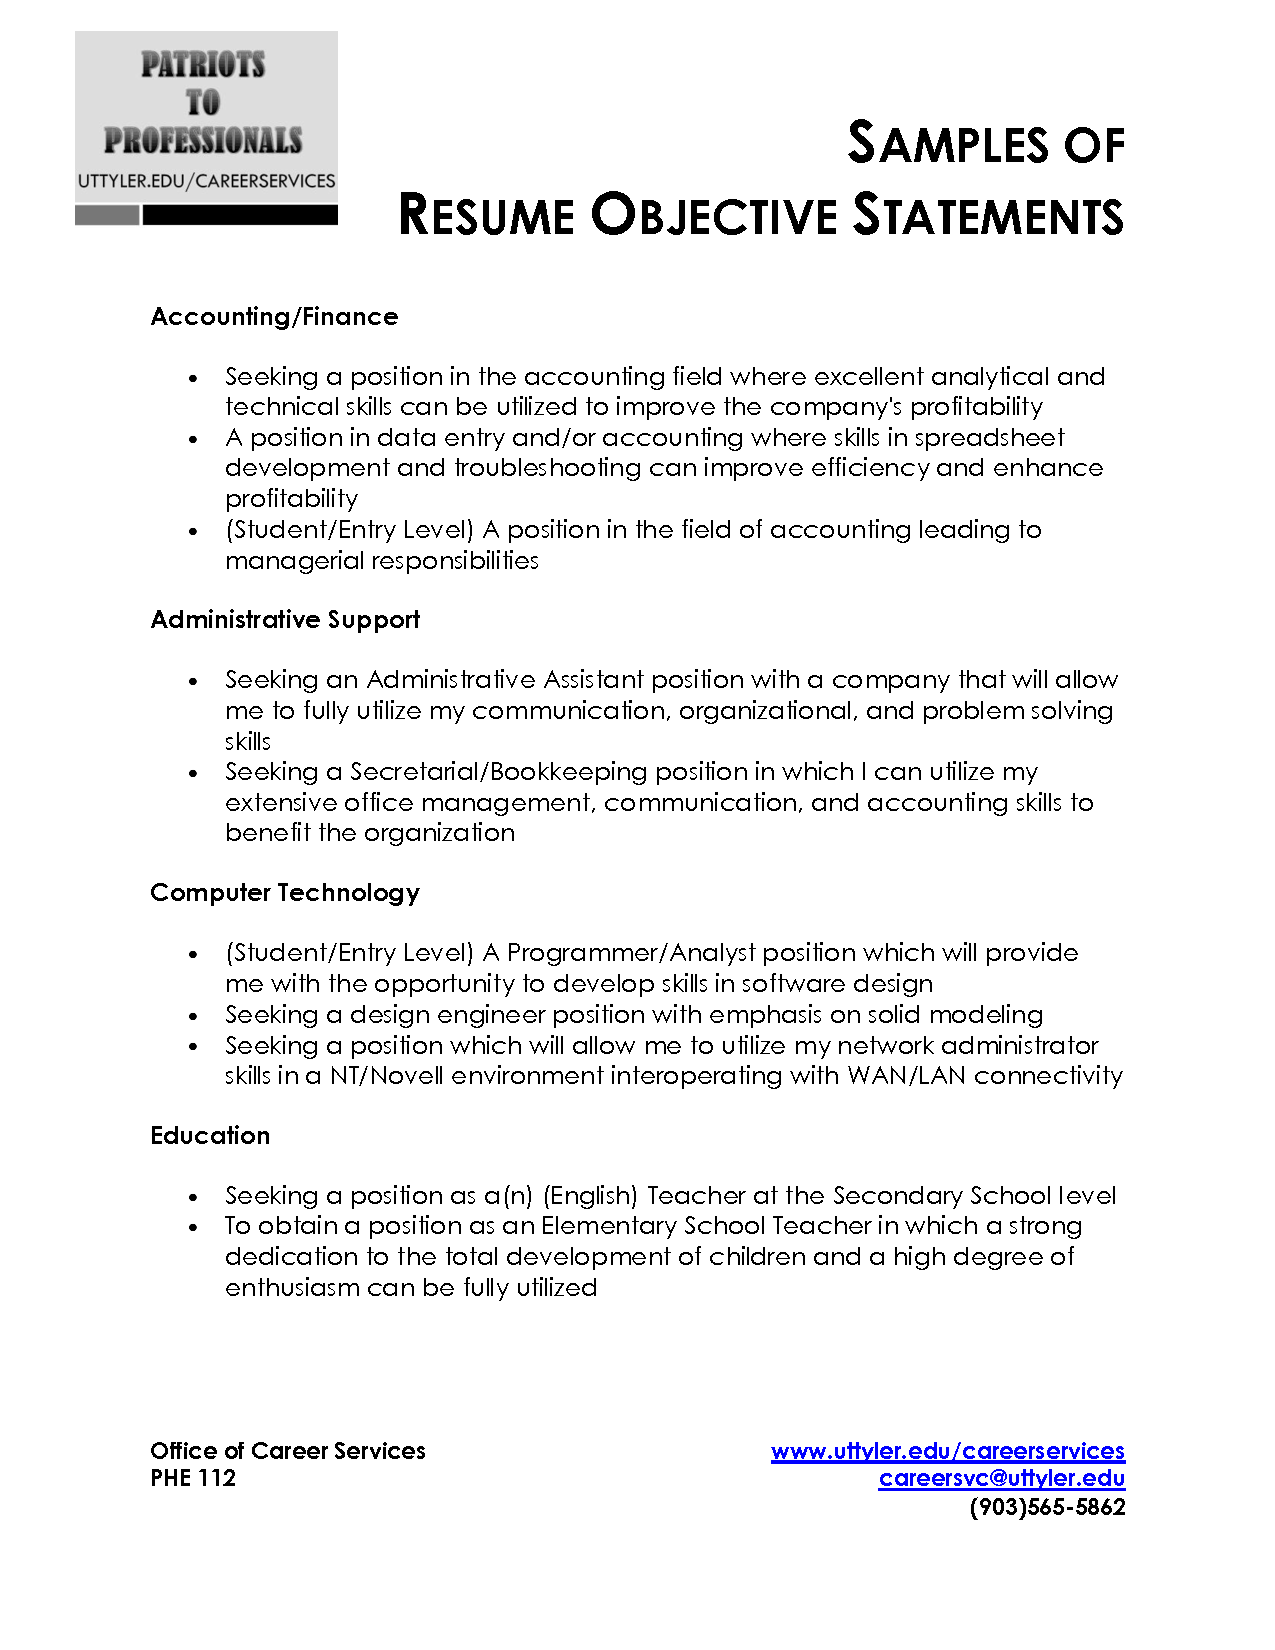 Resume Objective Statement - Obfuscata